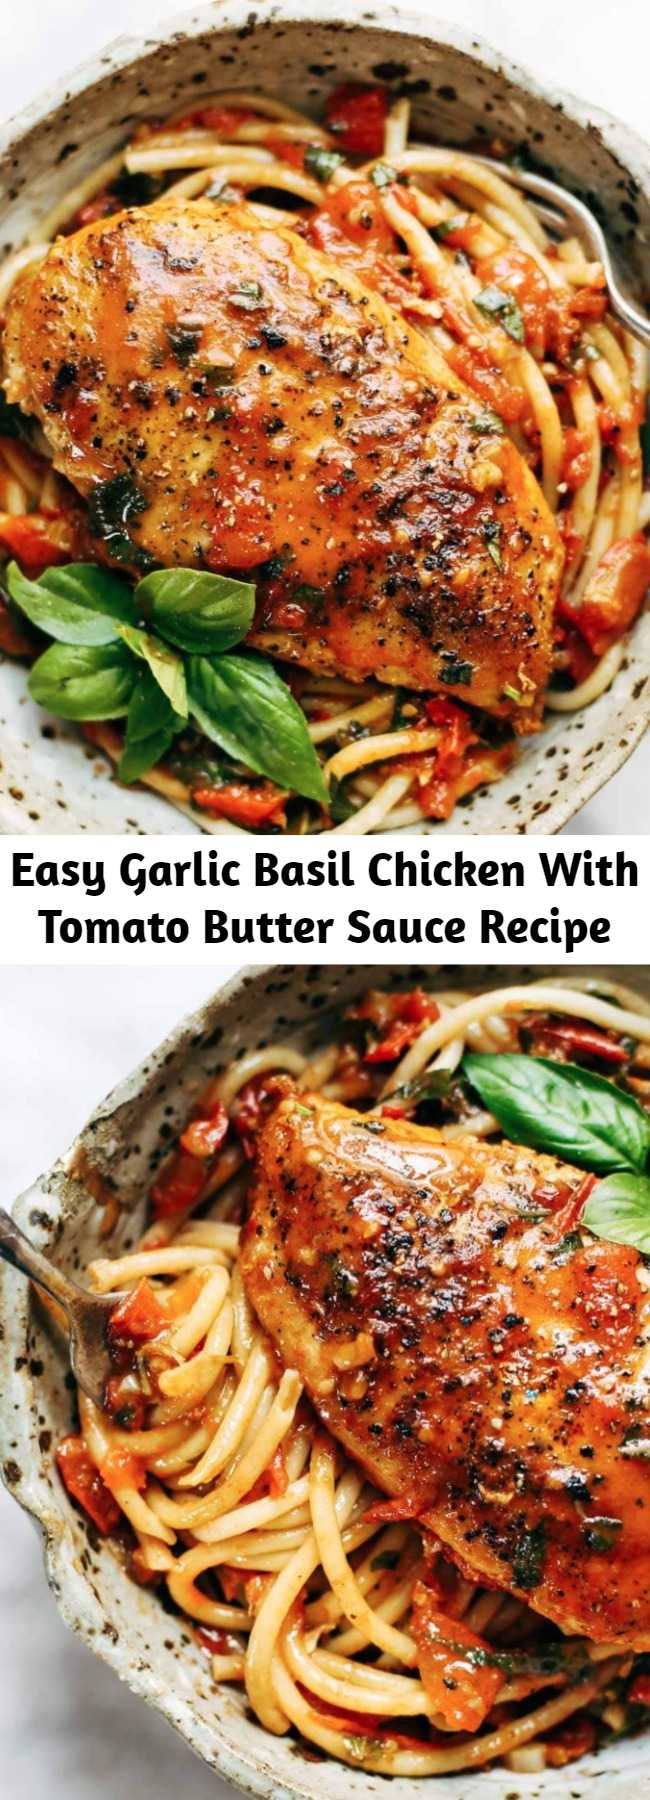 Easy Garlic Basil Chicken With Tomato Butter Sauce Recipe - You won't believe that this easy real food recipe only requires 7 ingredients like basil, garlic, olive oil, tomatoes, and butter.